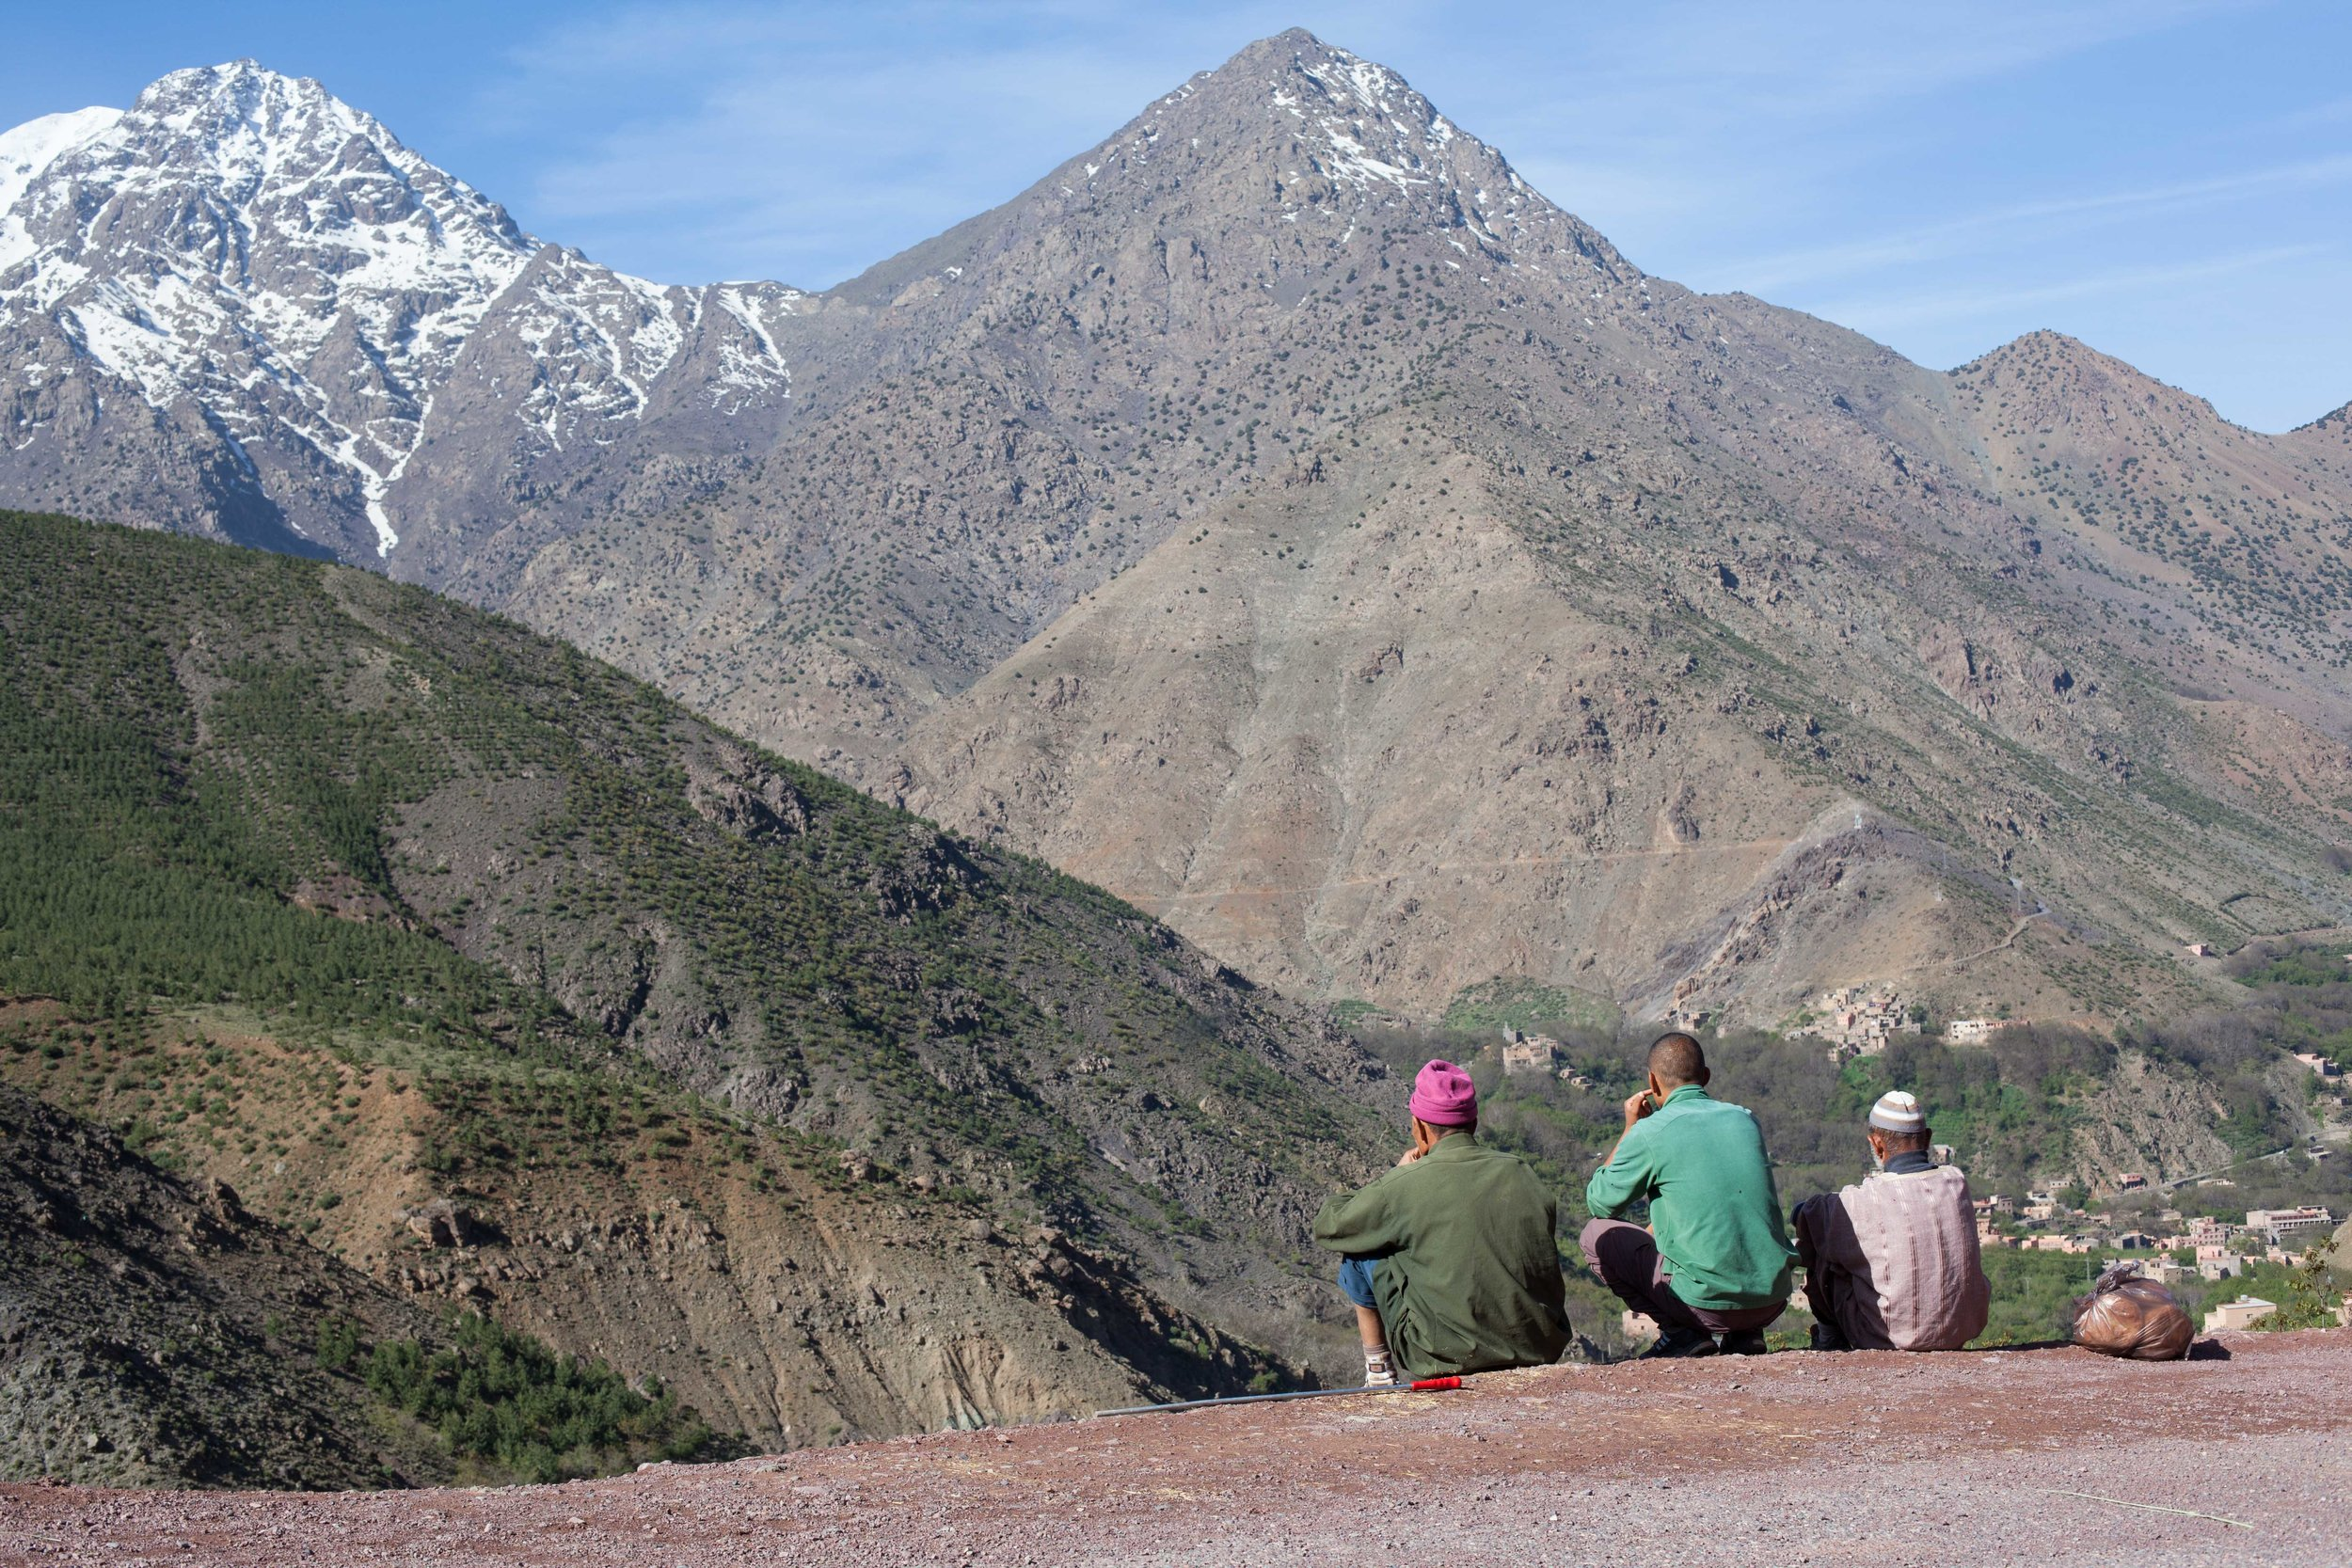 Berbers, are an ethnic group indigenous to North Africa.  Three locals enjoying the view from their backyard in the Atlas Mountains.